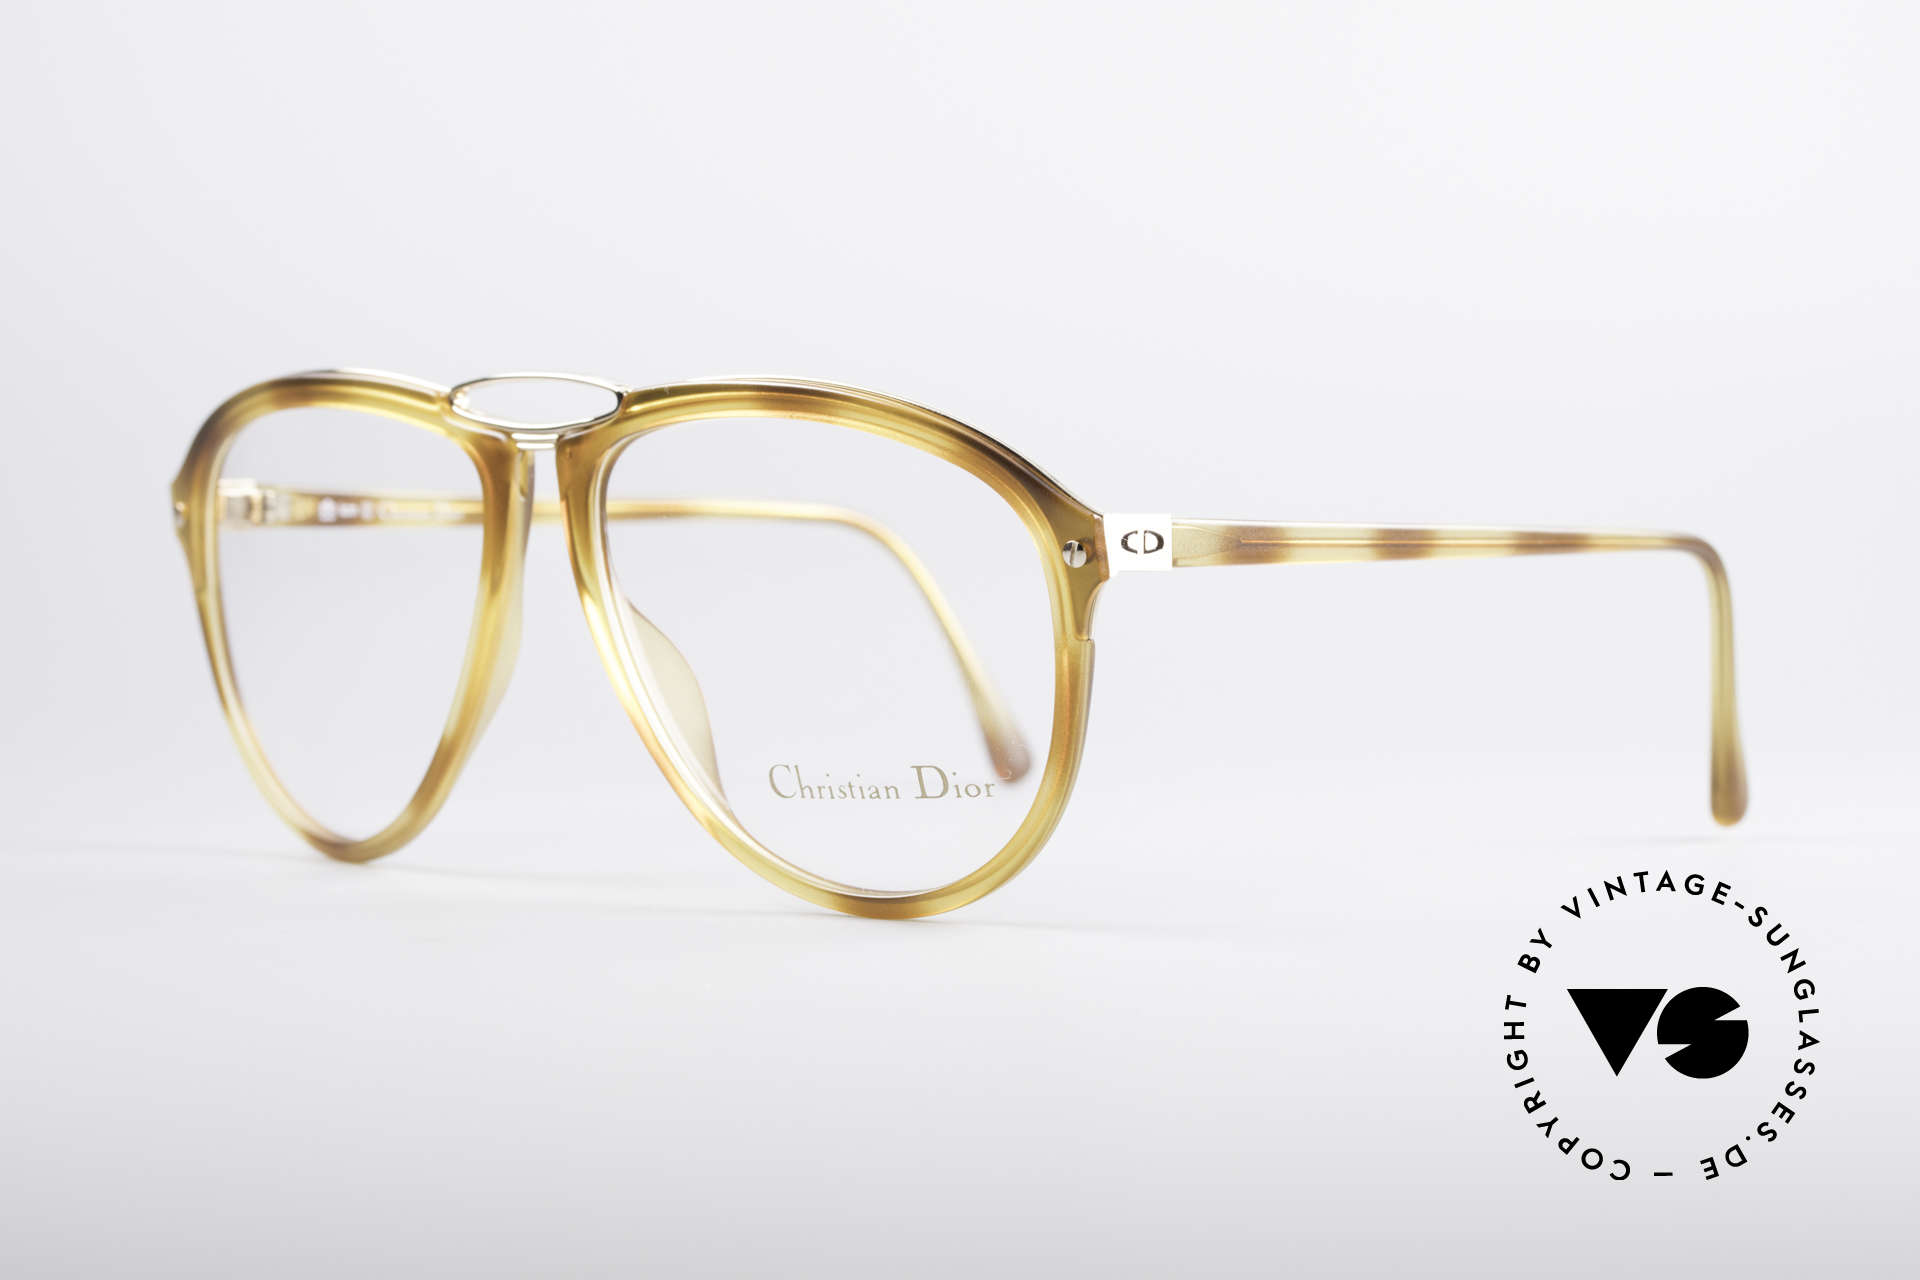 Christian Dior 2523 80's No Retro Glasses Men, flexible synthetic (OPTYL) frame with a metal inlay, Made for Men